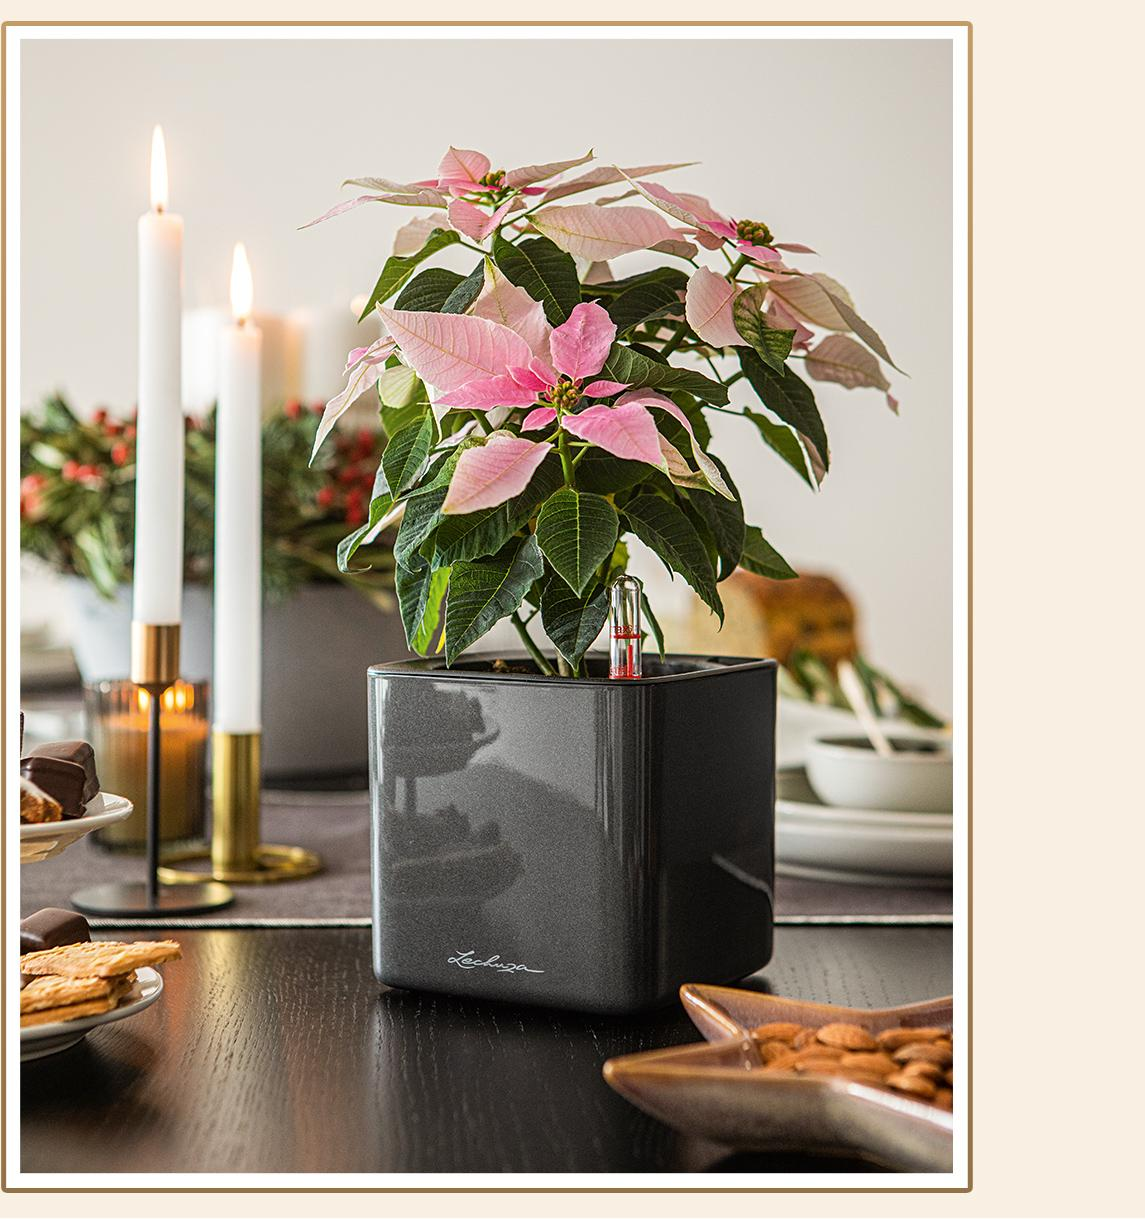 CUBE Glossy 14 anthracite highgloss planted with a pink poinsettia